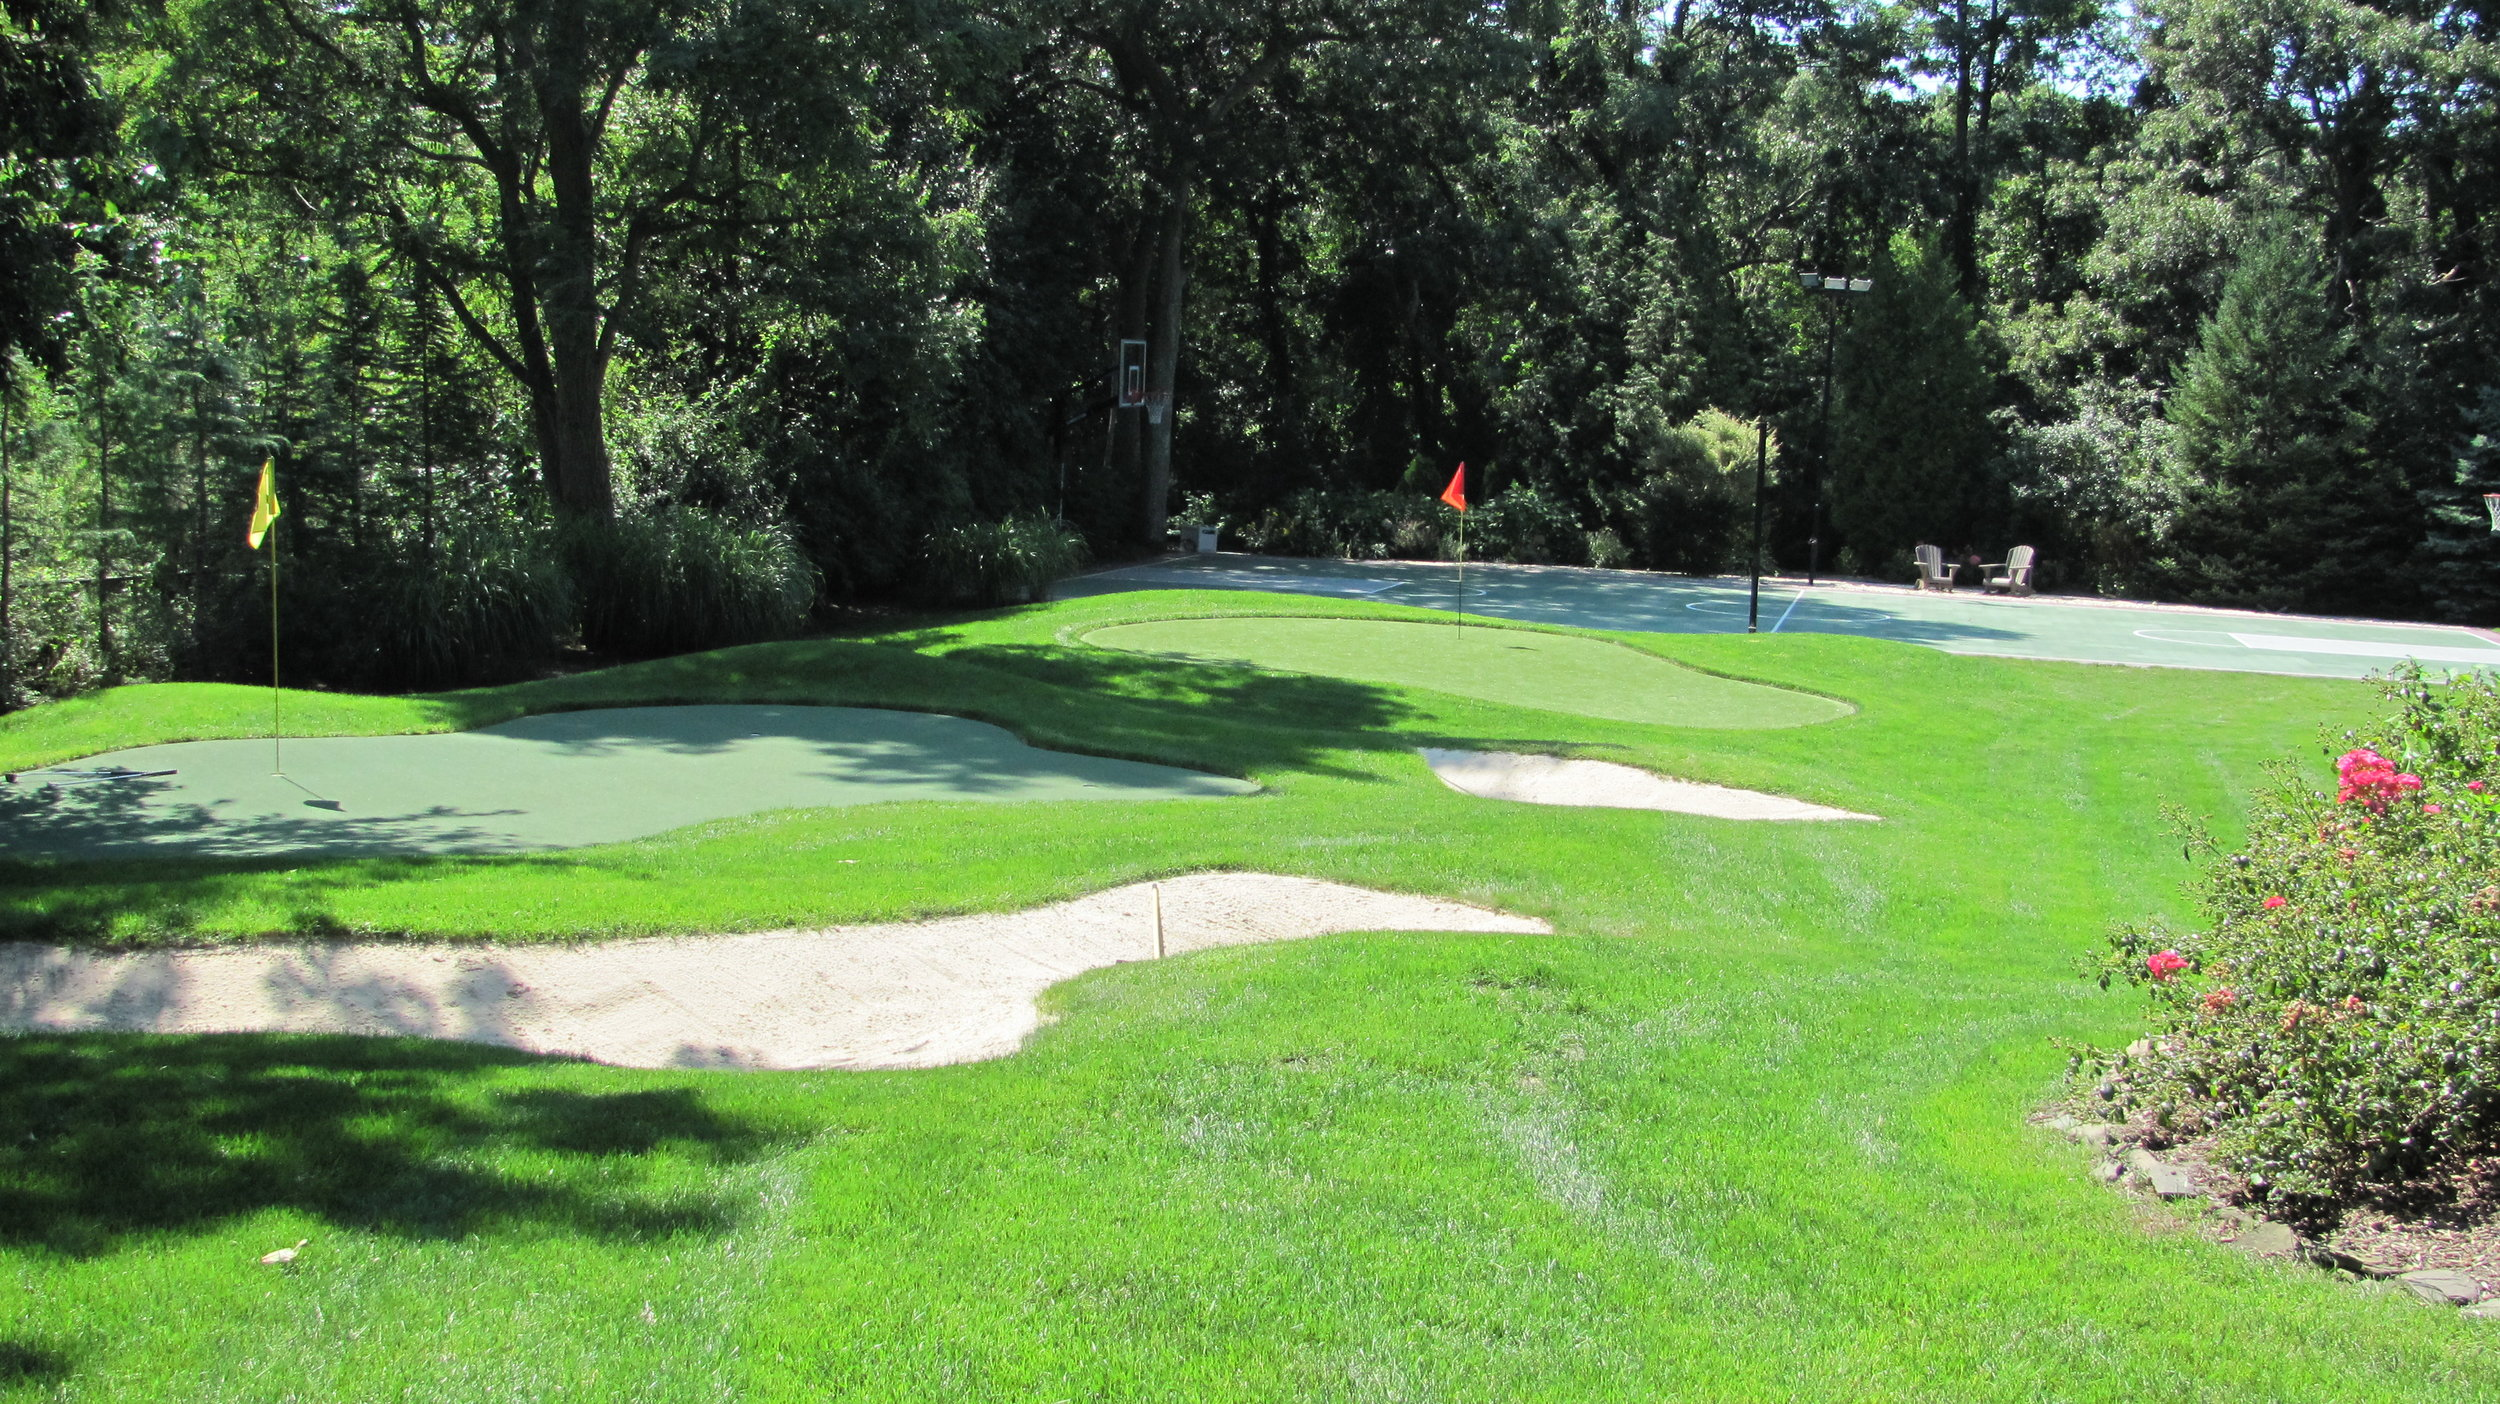 Professional golf course landscape design company in Long Island, NY